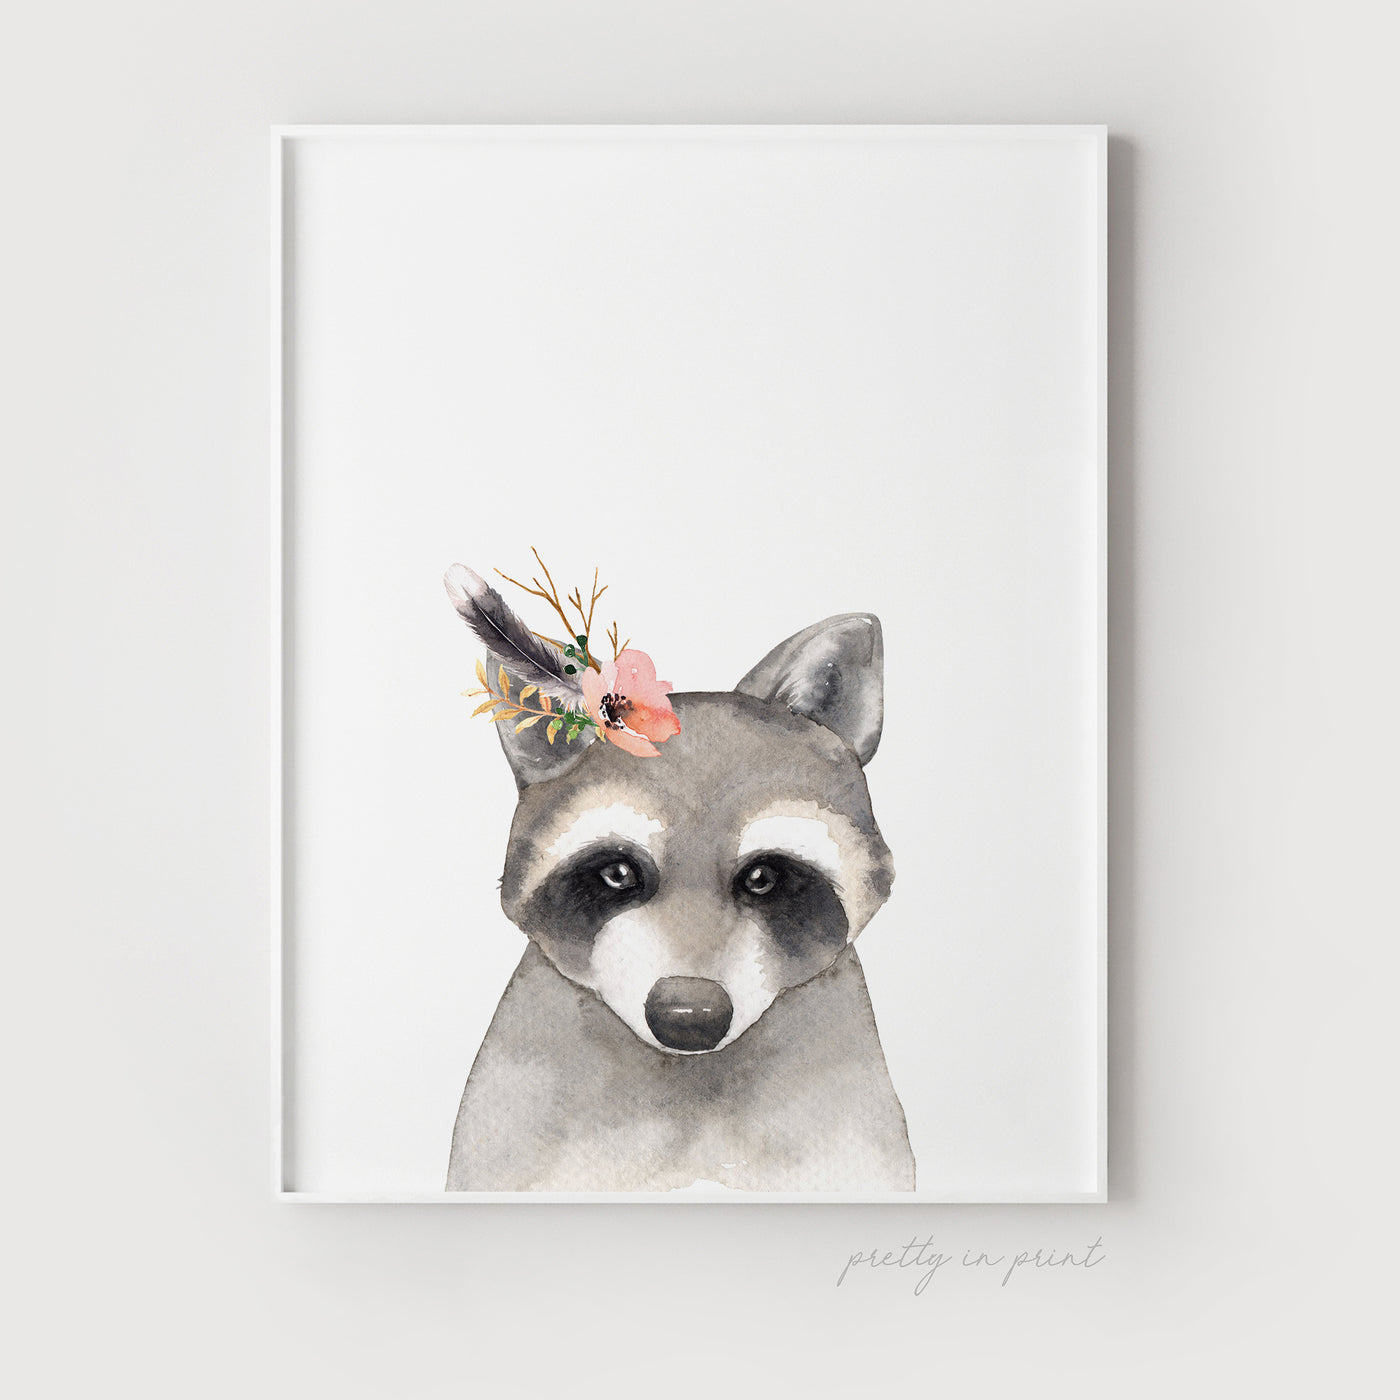 Nursery Raccoon Print - Floral Version - Pretty in Print Art